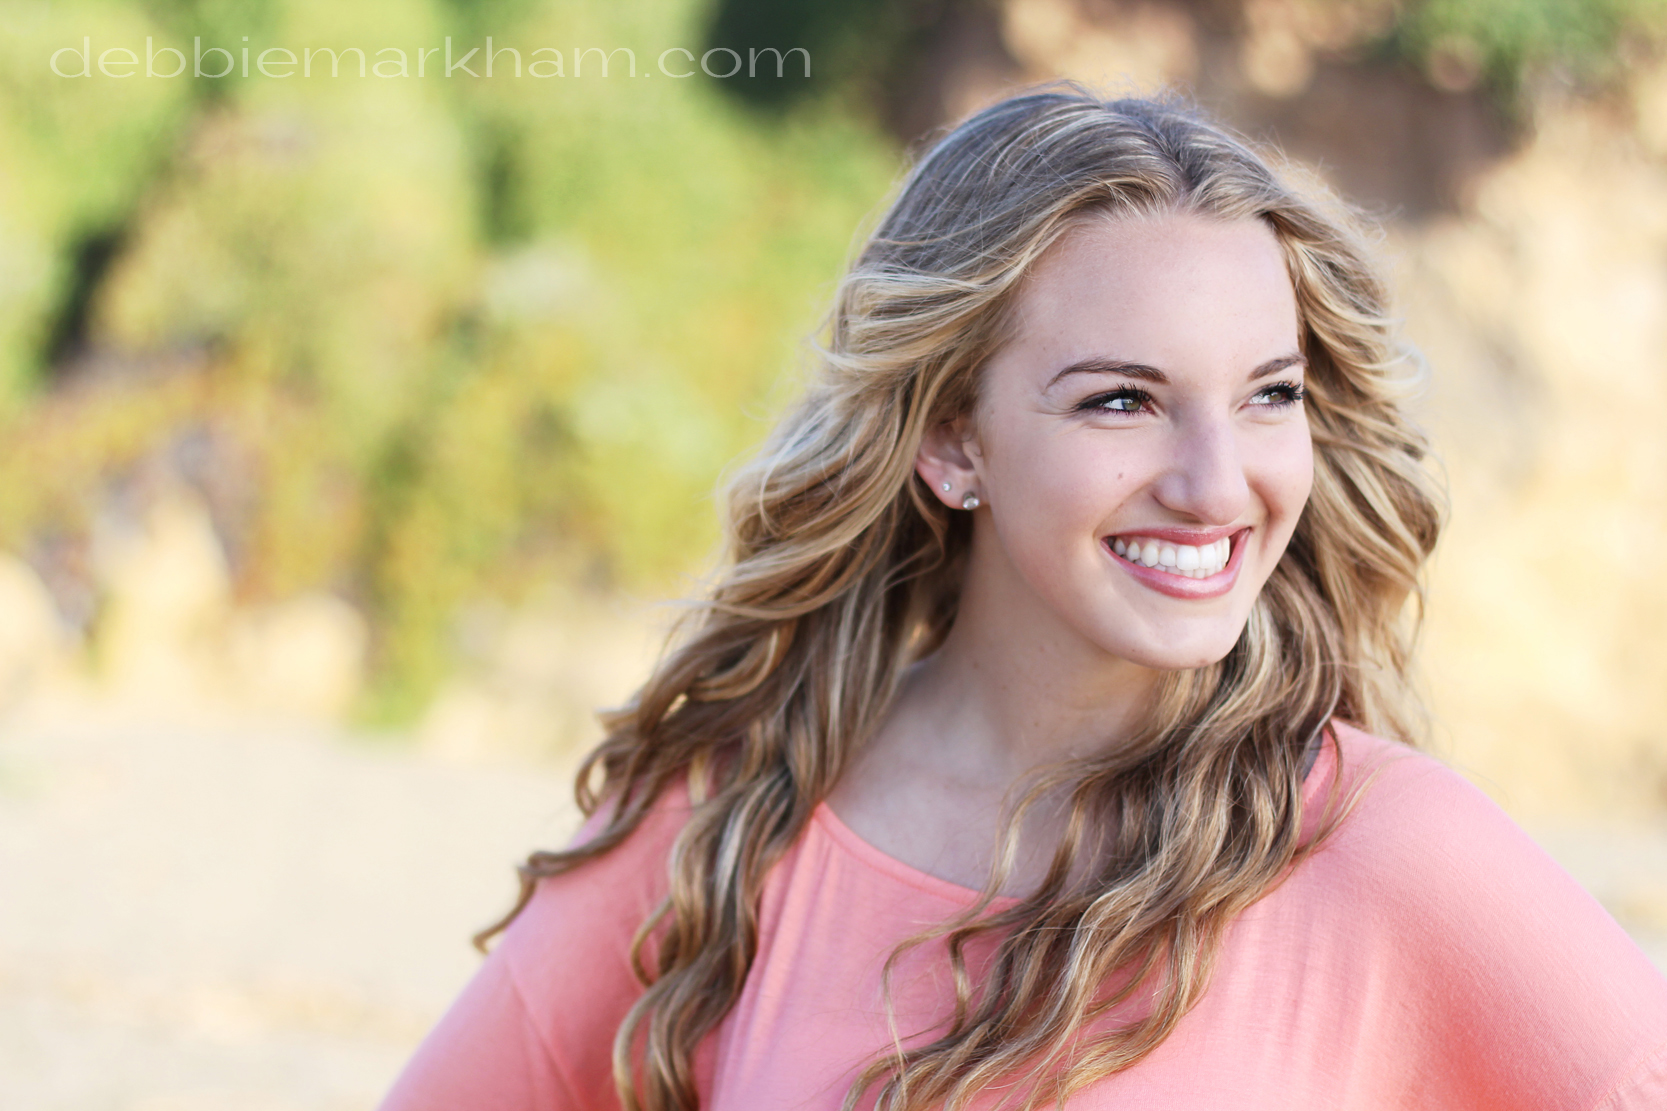 Kendall Senior Portrait on the Beach-Cambria Photographer Debbie Markham